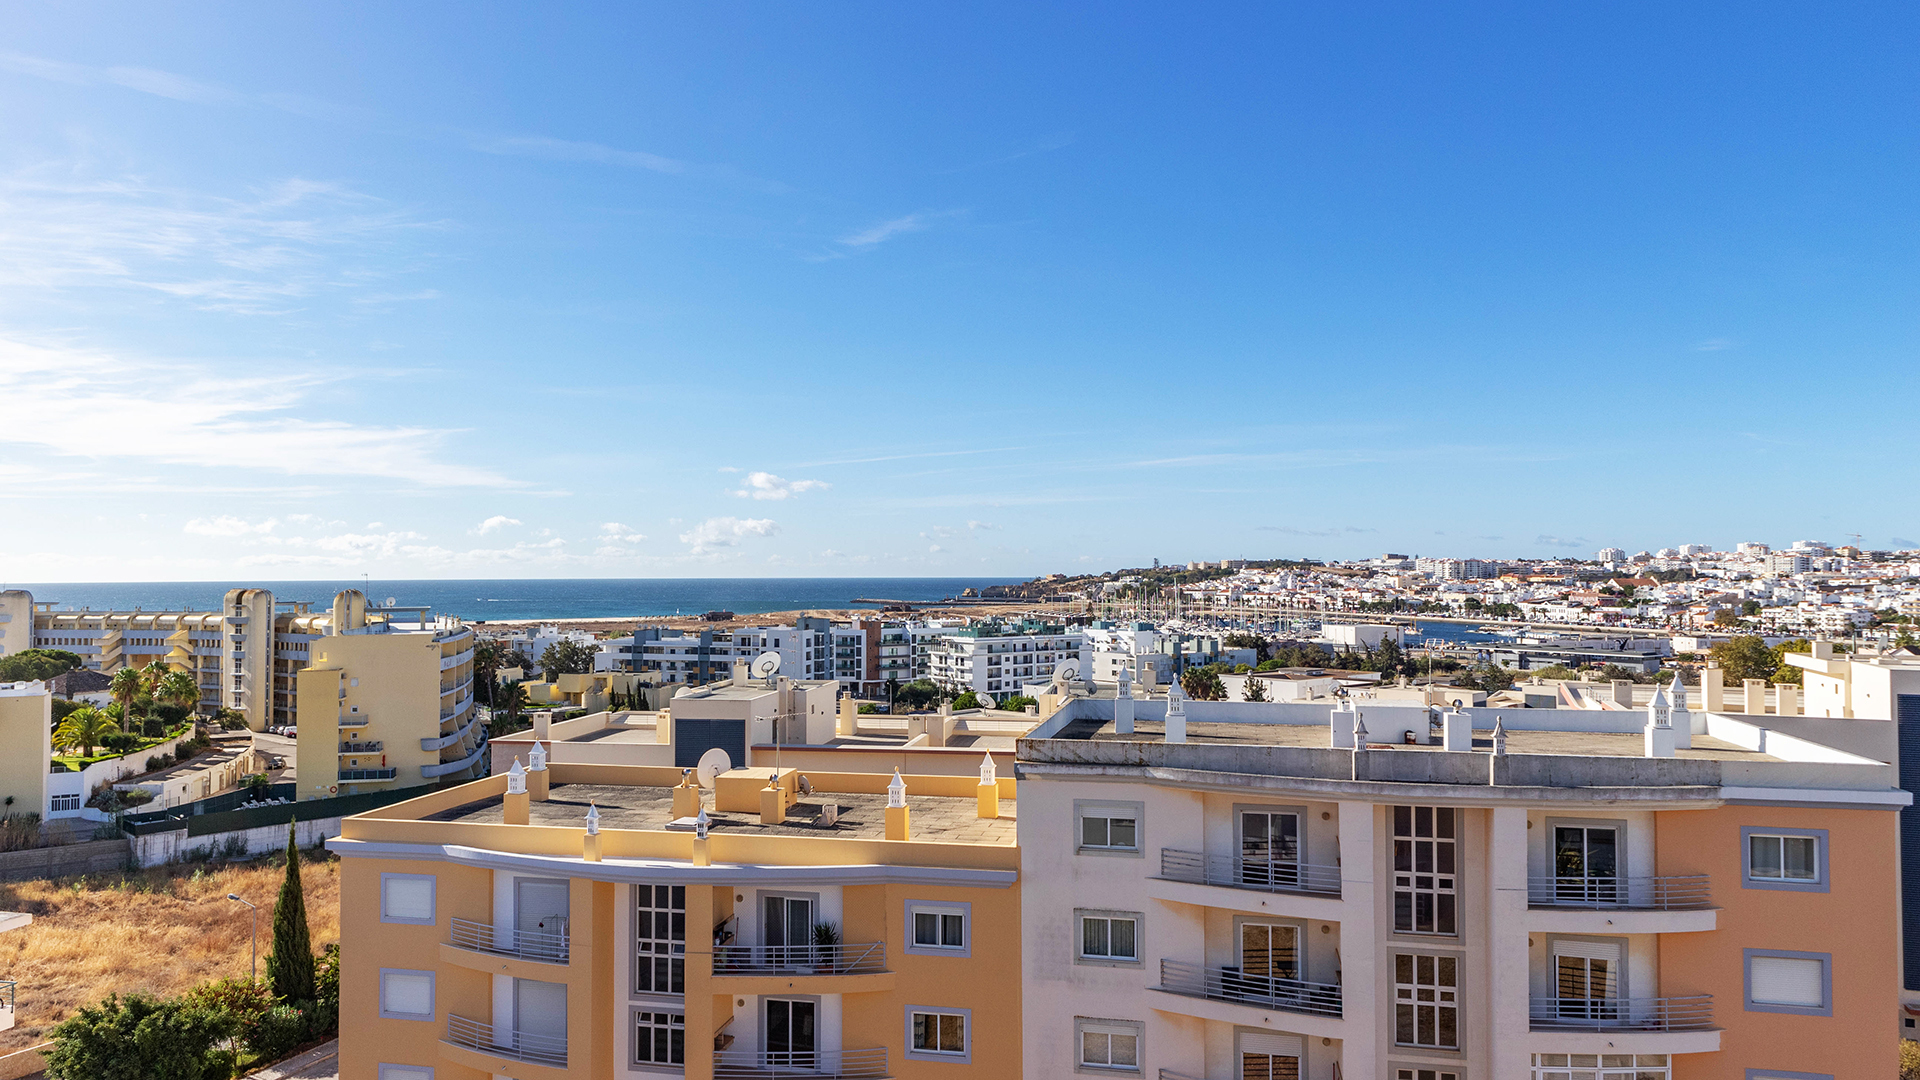 Immaculate 3 bedroom apartment with sea views, Lagos, West Algarve | LG1539 This second floor, 3 bedroom apartment is located in a quiet, sought-after area not far from Lagos marina. With communal roof terrace and proximity to the beach, this apartment maximises the Algarve weather and is only a short walk from local amenities and the historic centre of Lagos, making it perfect for both residence or holidays.